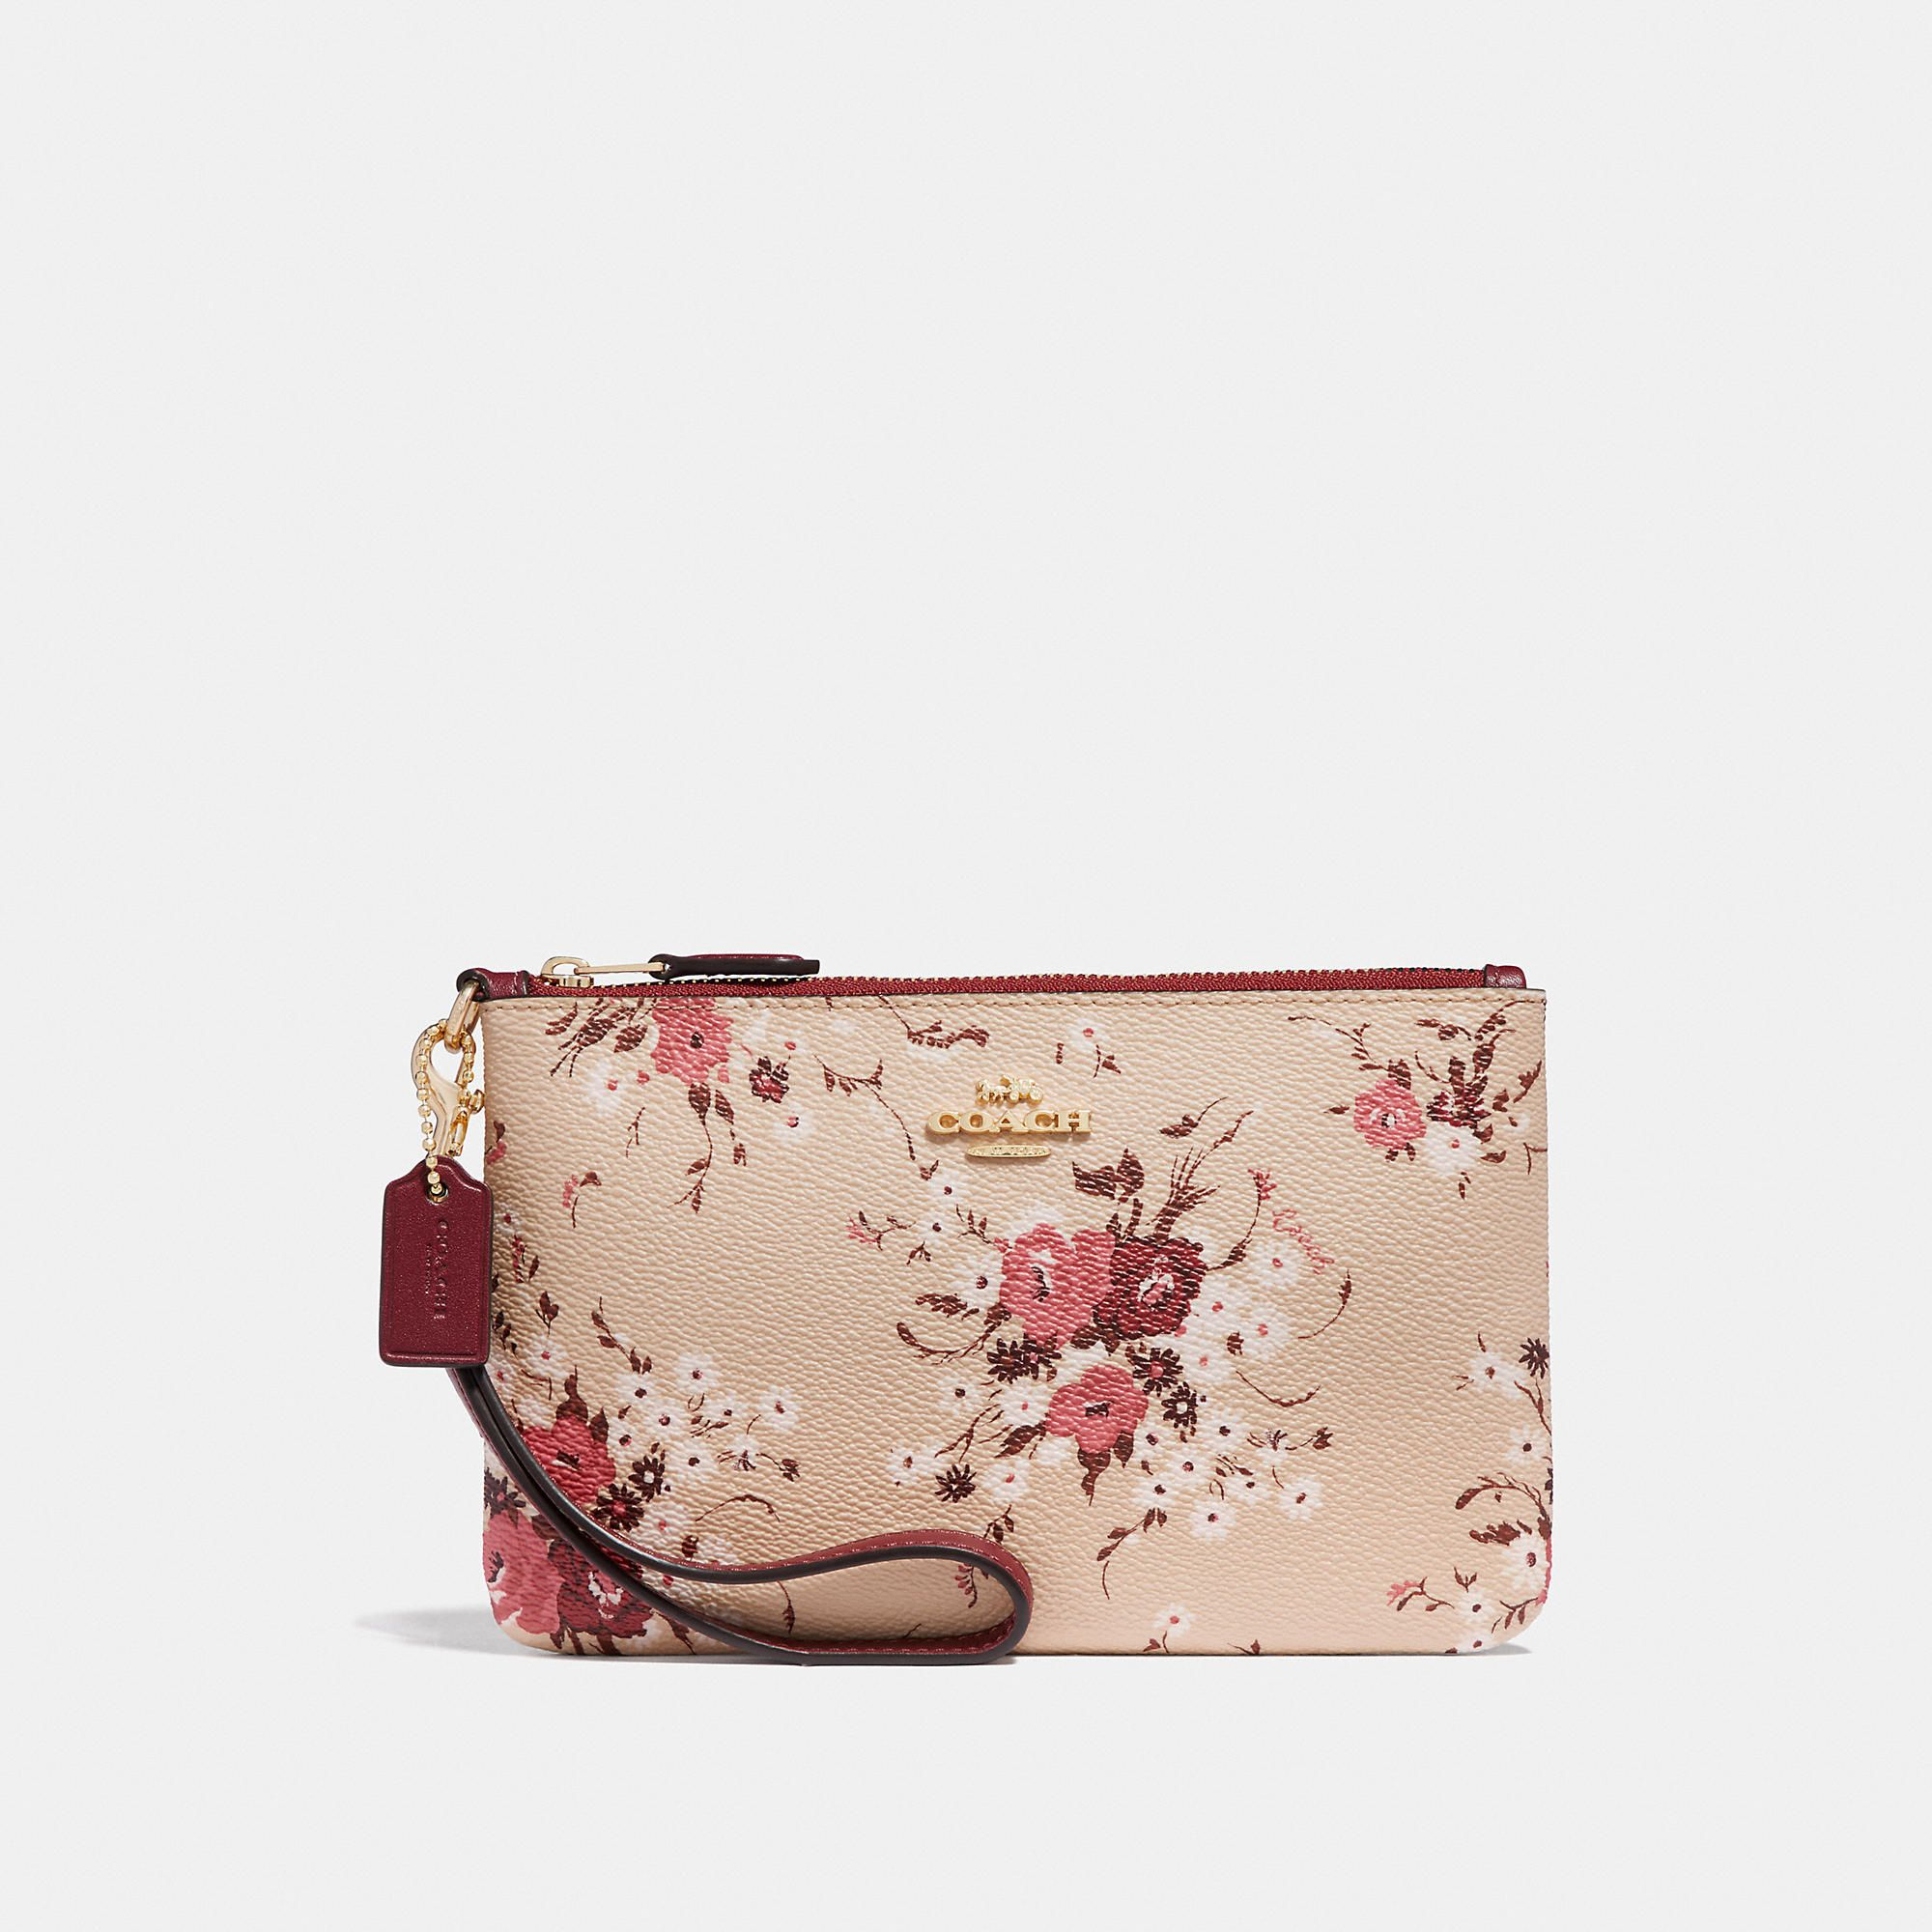 797368f86f Small wristlet with floral bundle print in 2019 | Products | Coach ...